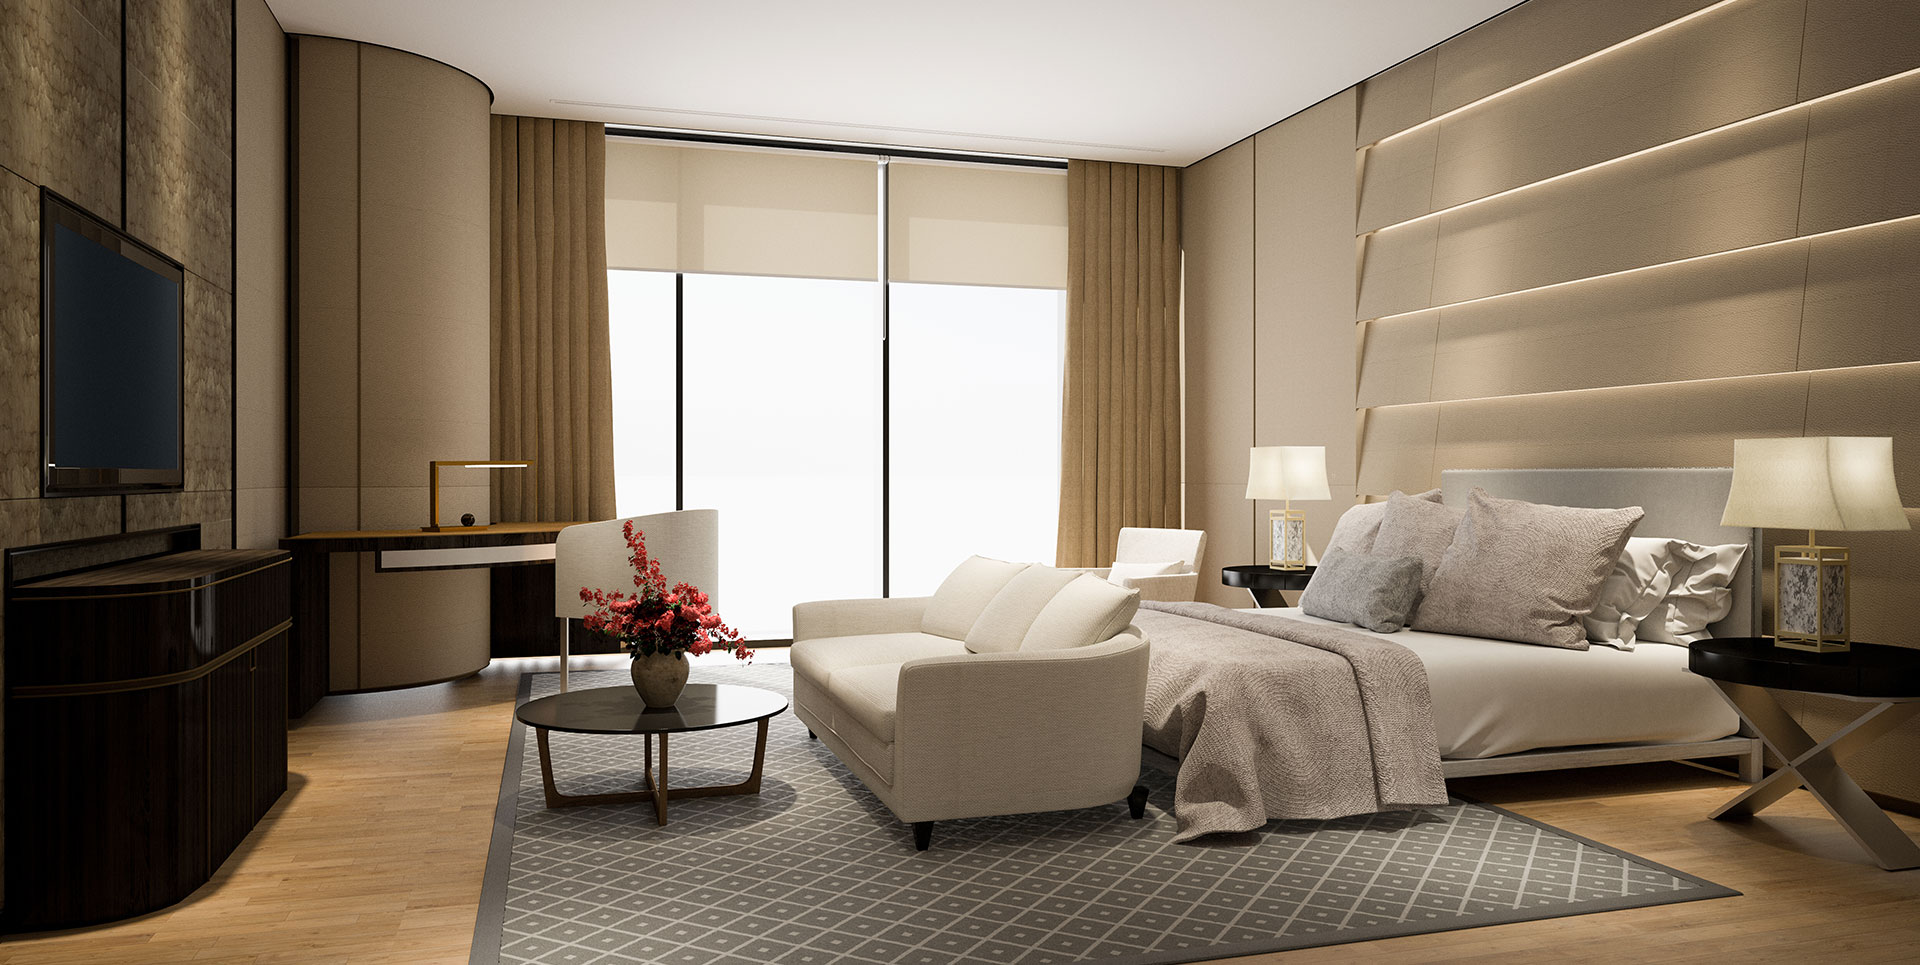 Interior Design Companies in Dubai | Luxedesign by DAT